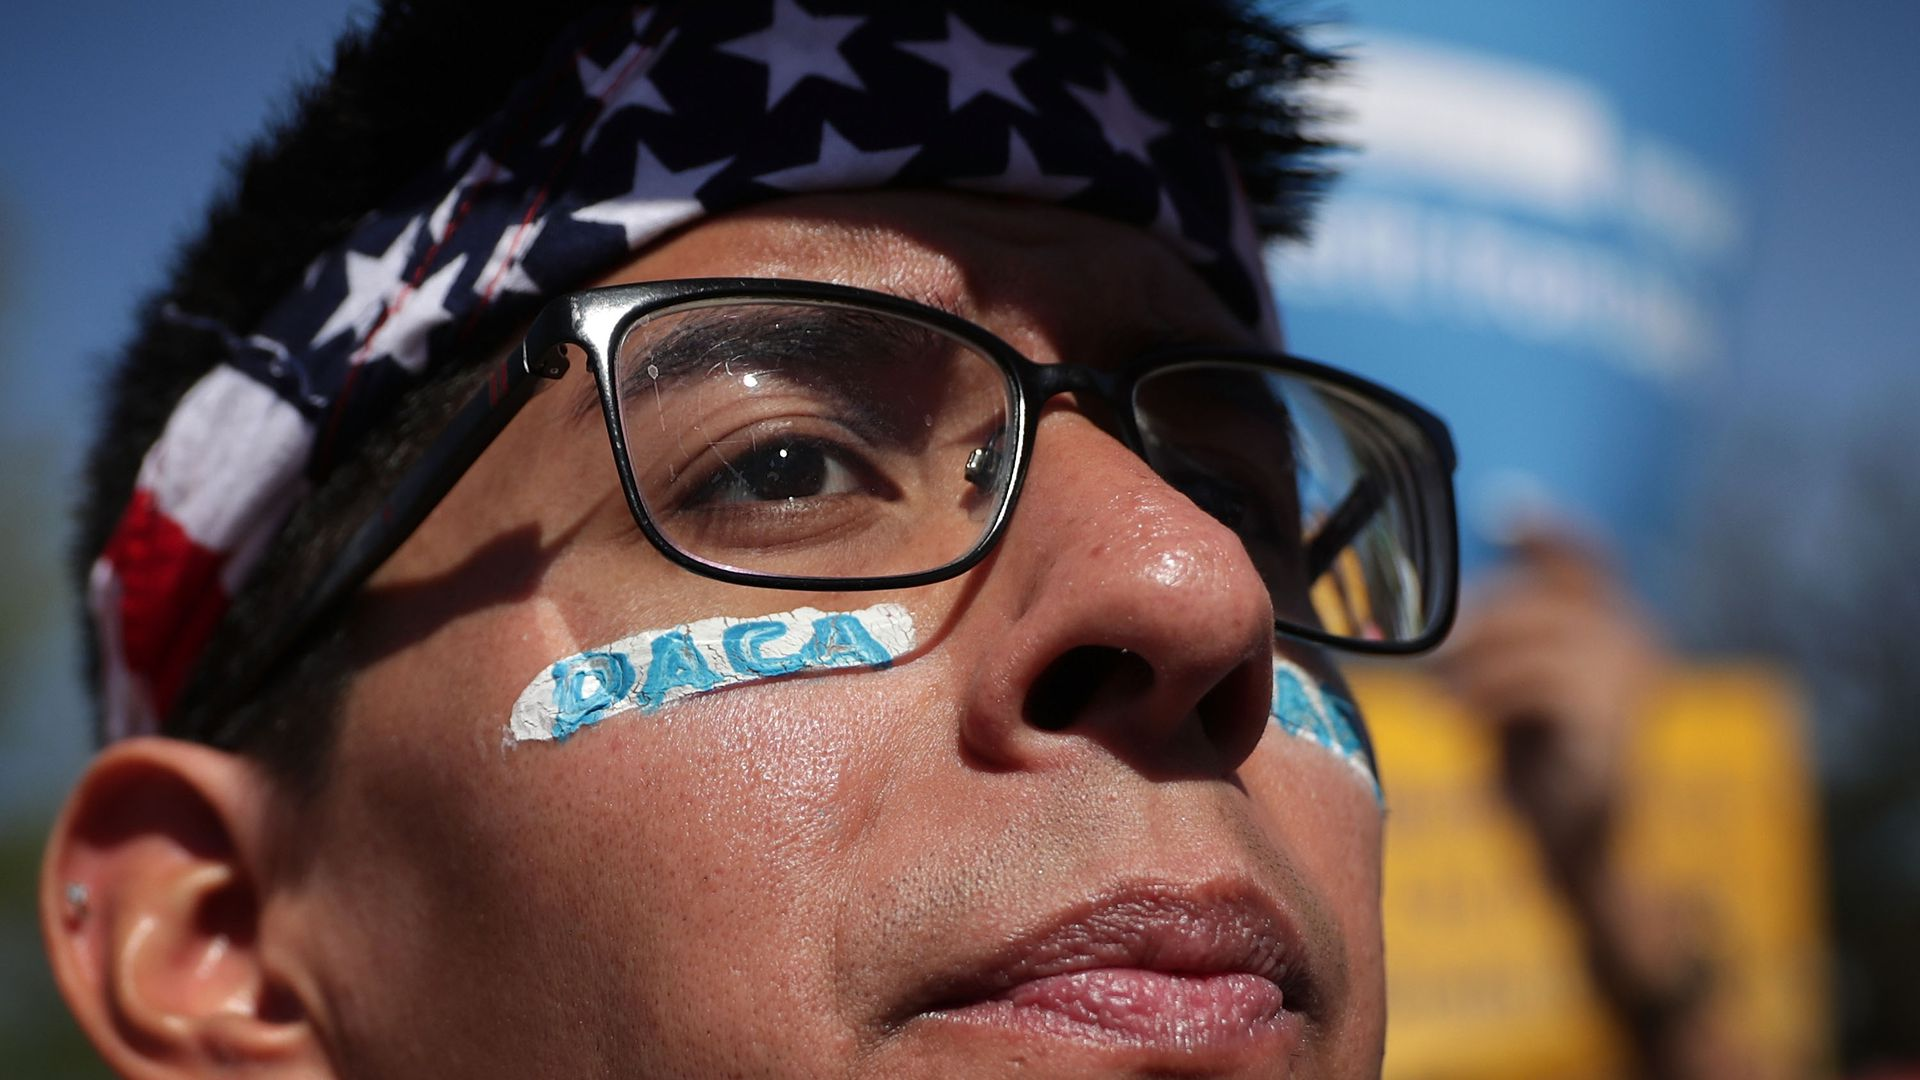 "DACA protestor with glasses, American flag bandana and stickers under his eyes with ""DACA"" written on them"